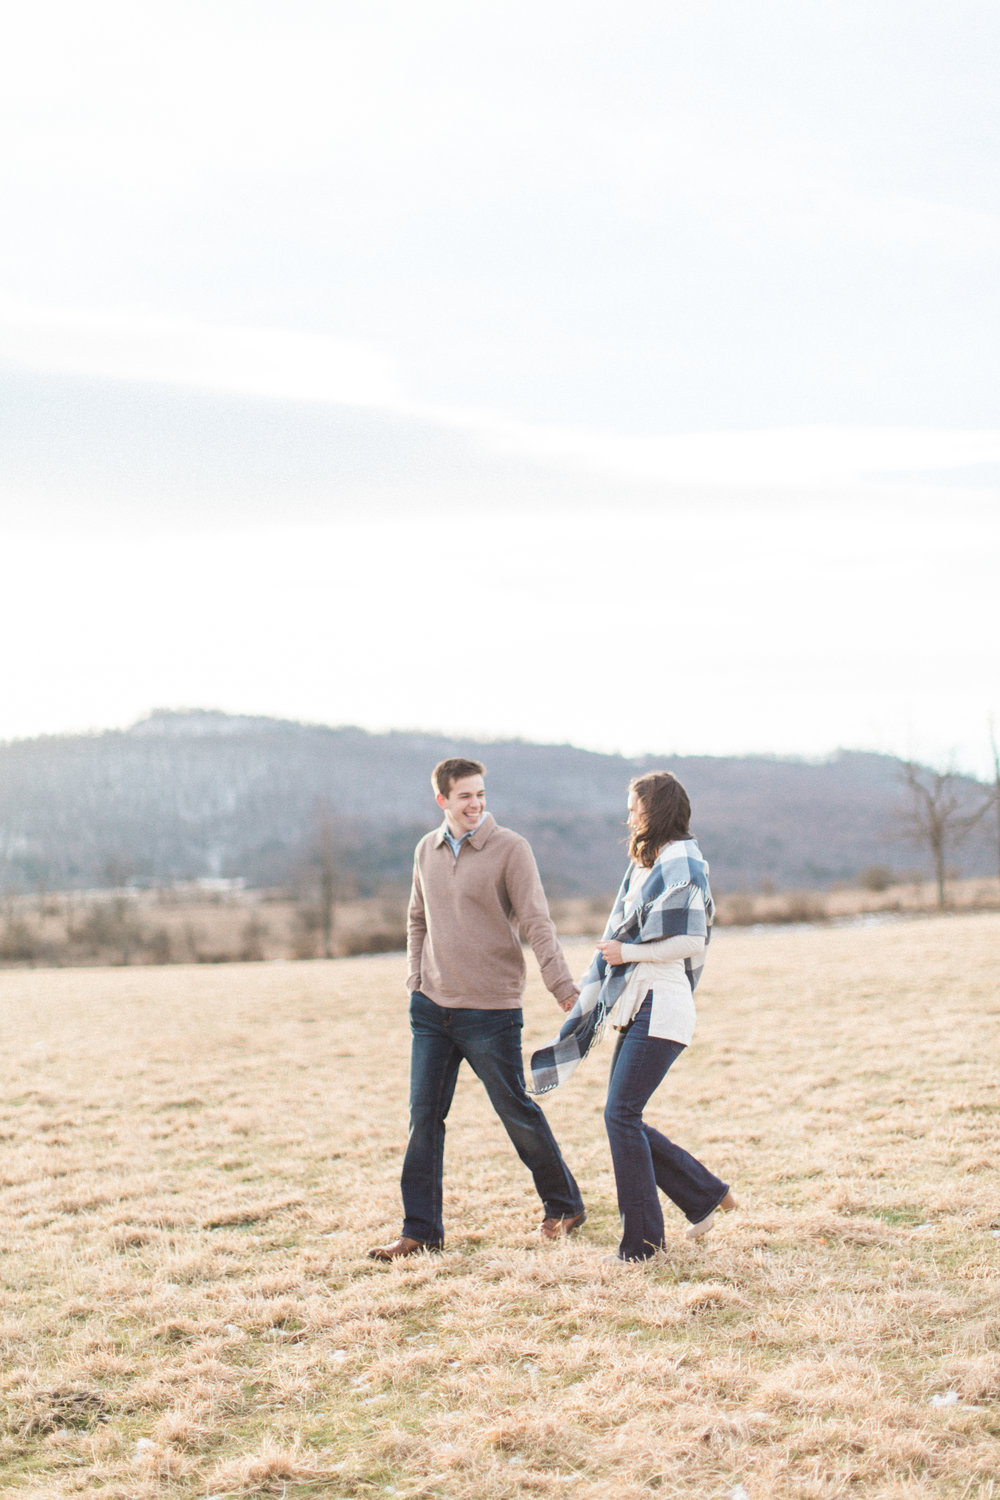 Abigail_Jill_Photography_Maryland_Engagement_Farm_Emily_Justin107.jpg